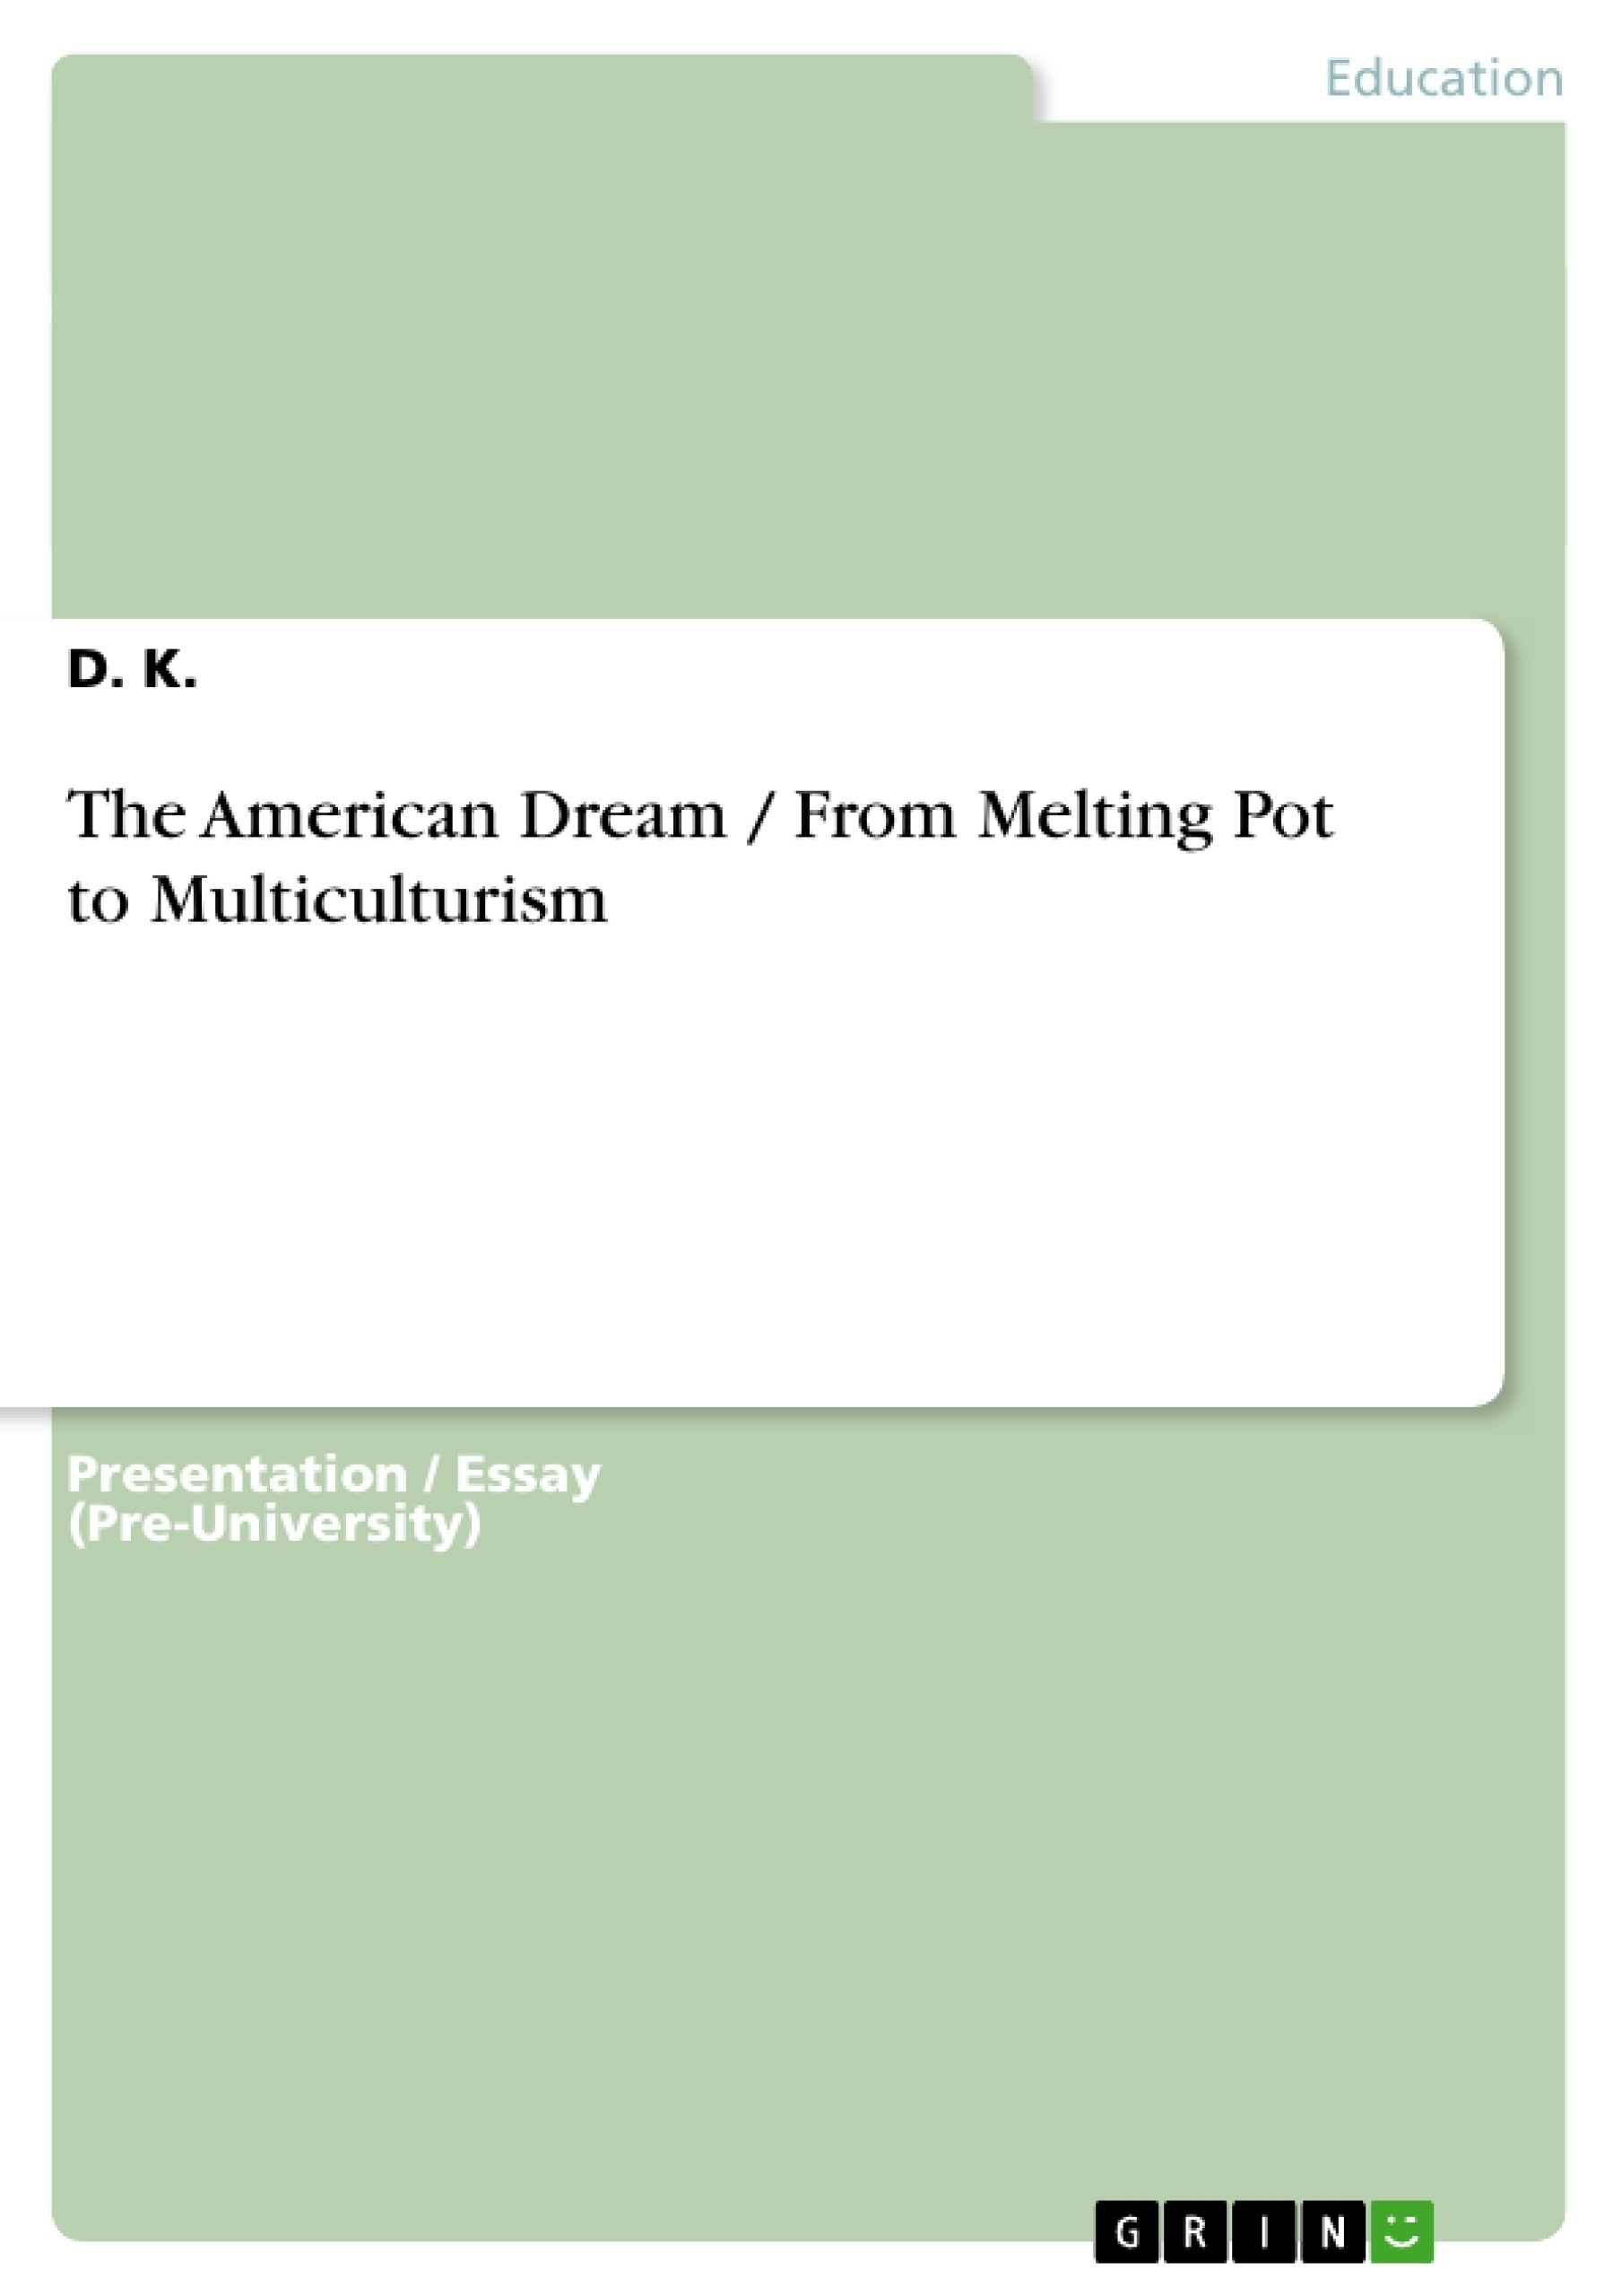 Title: The American Dream / From Melting Pot to Multiculturism